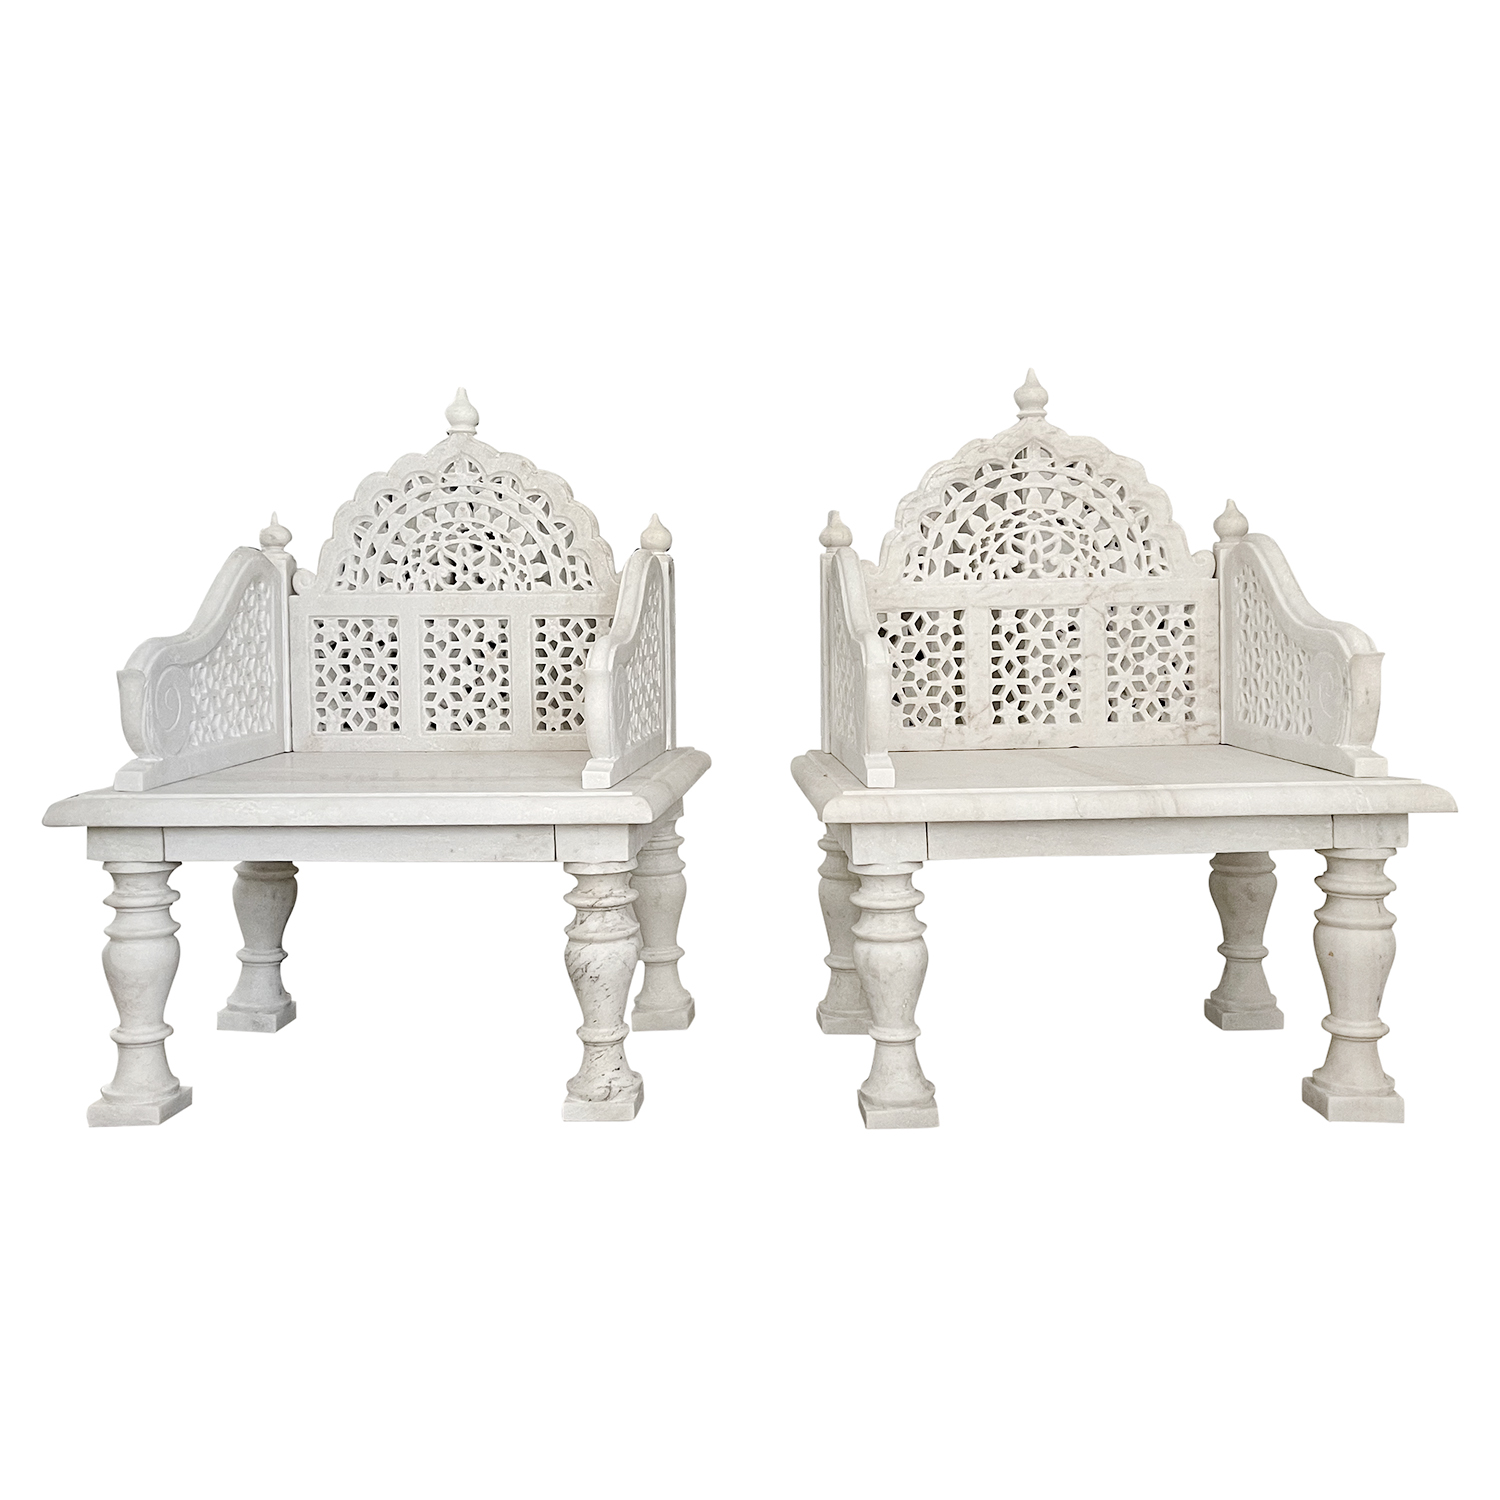 Pair of White Mughal Marble Seats